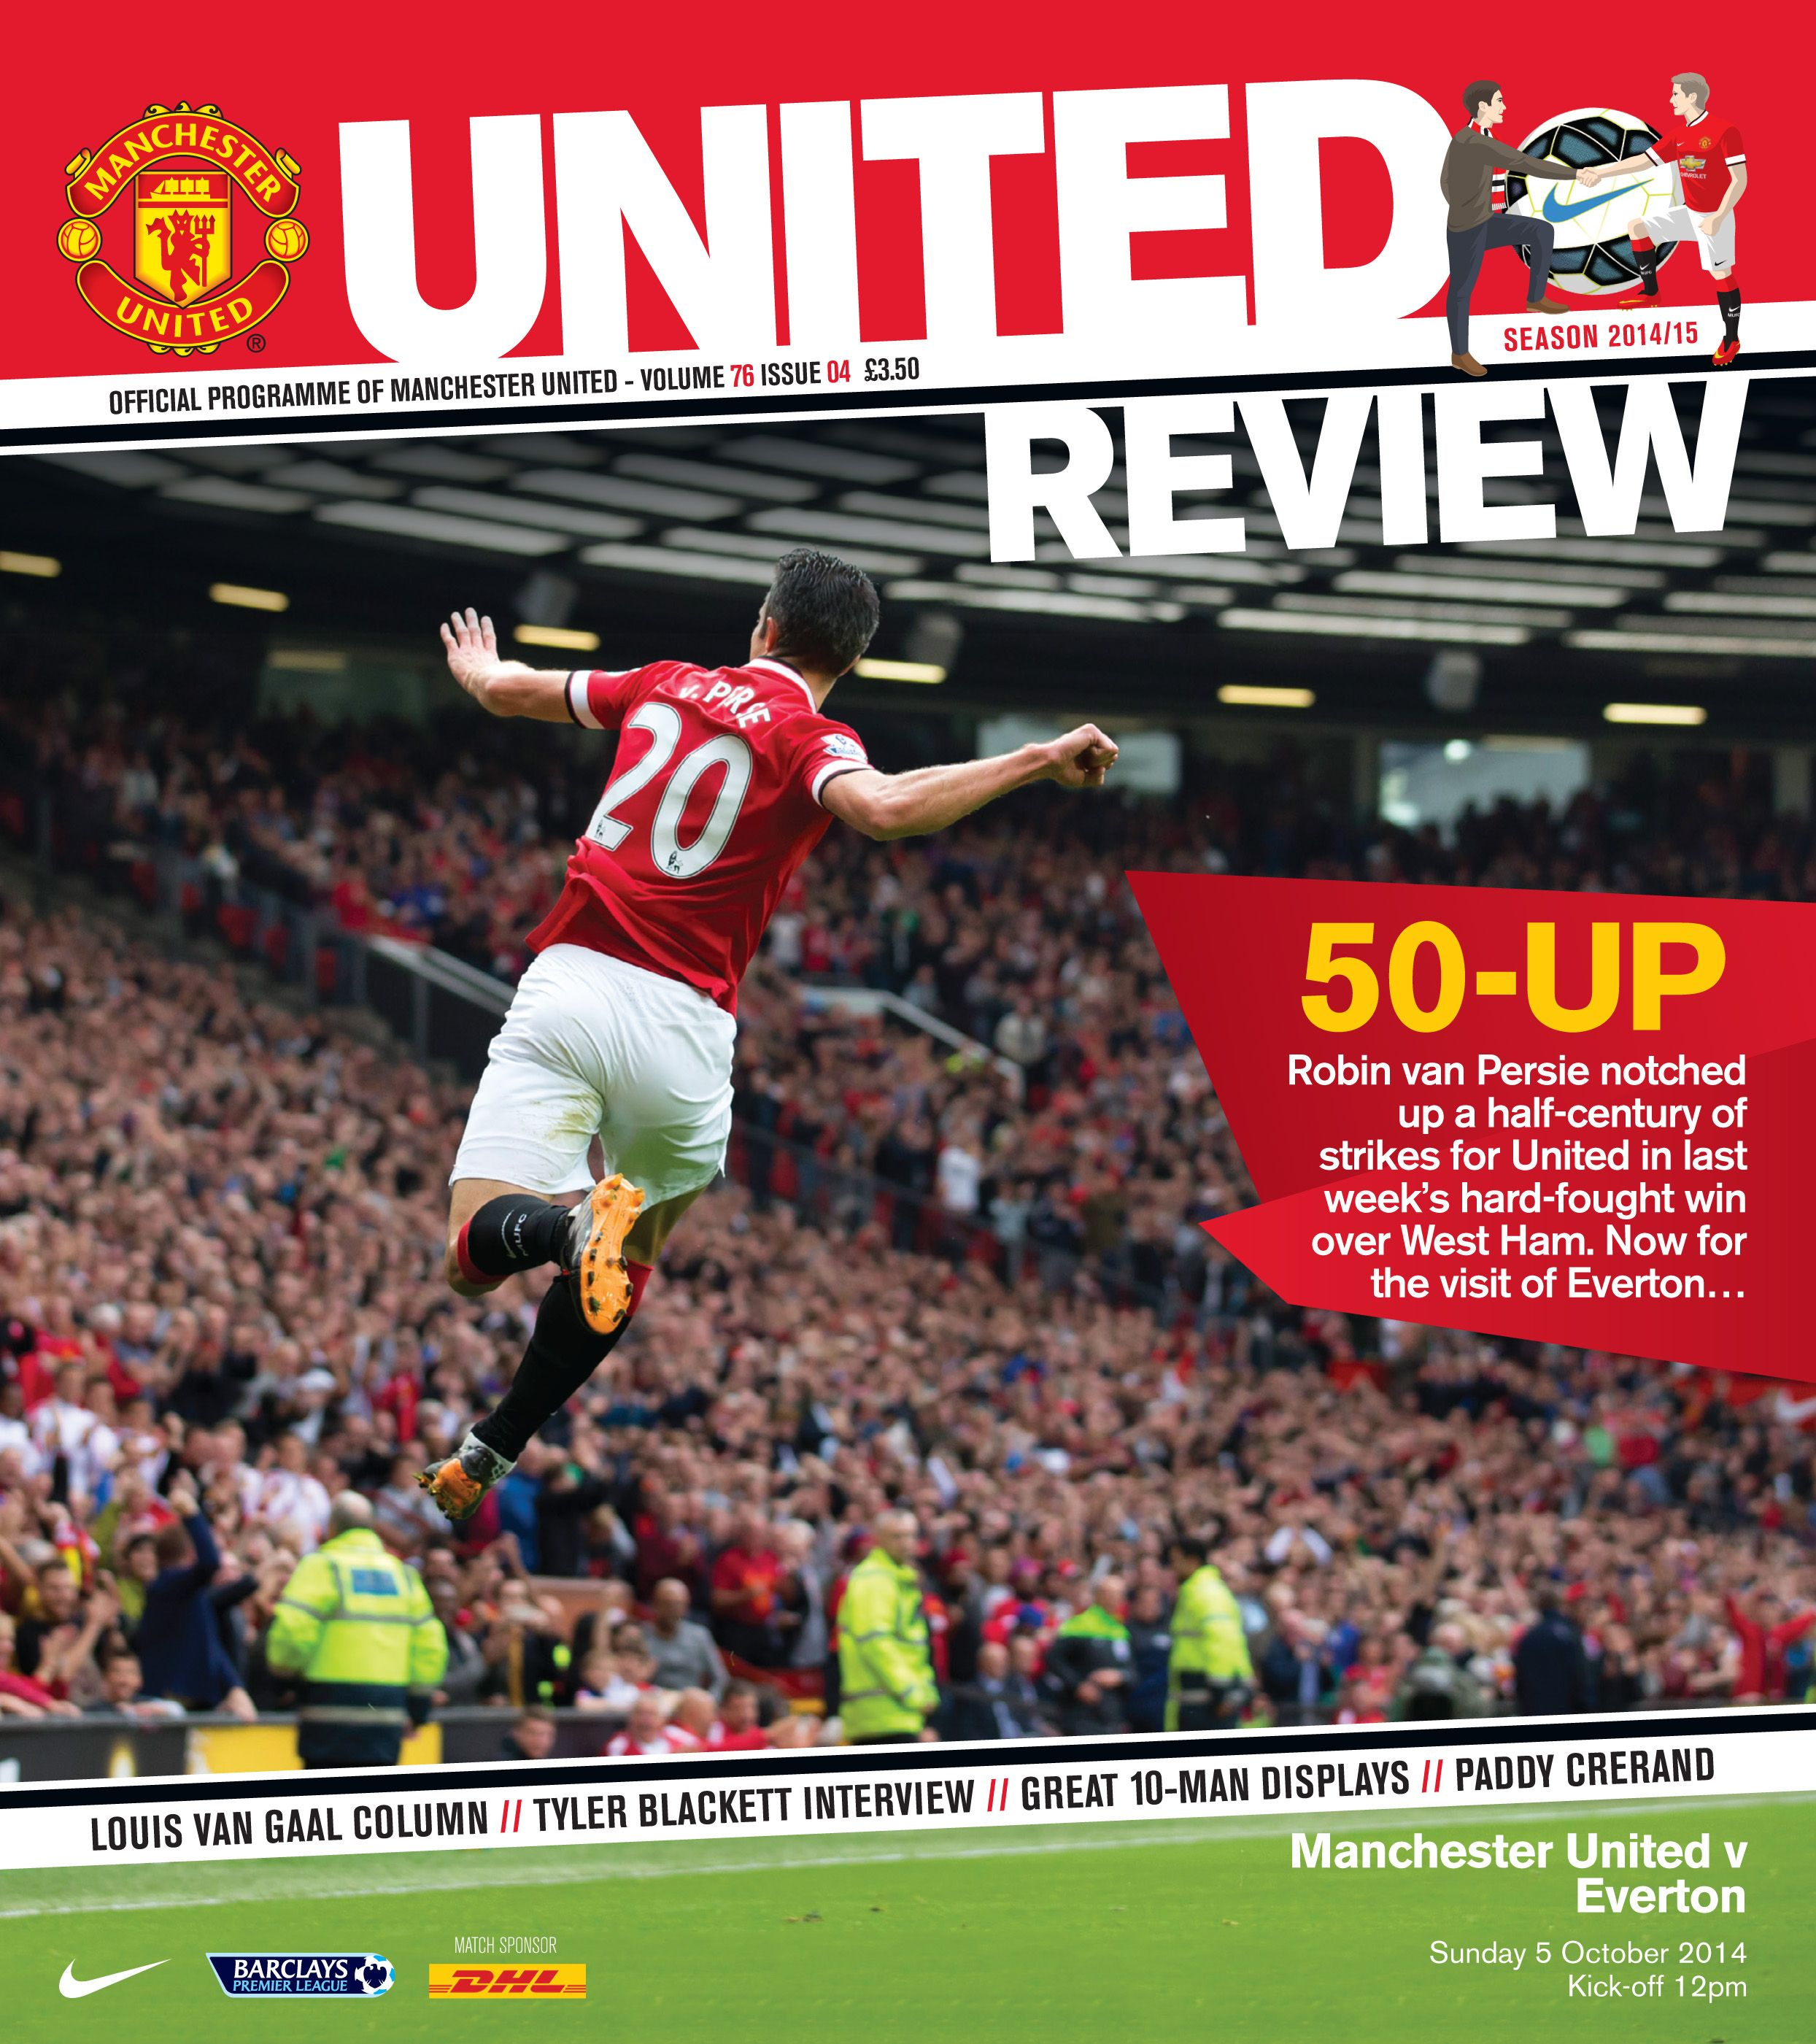 Front cover of United Review for the manutd home game